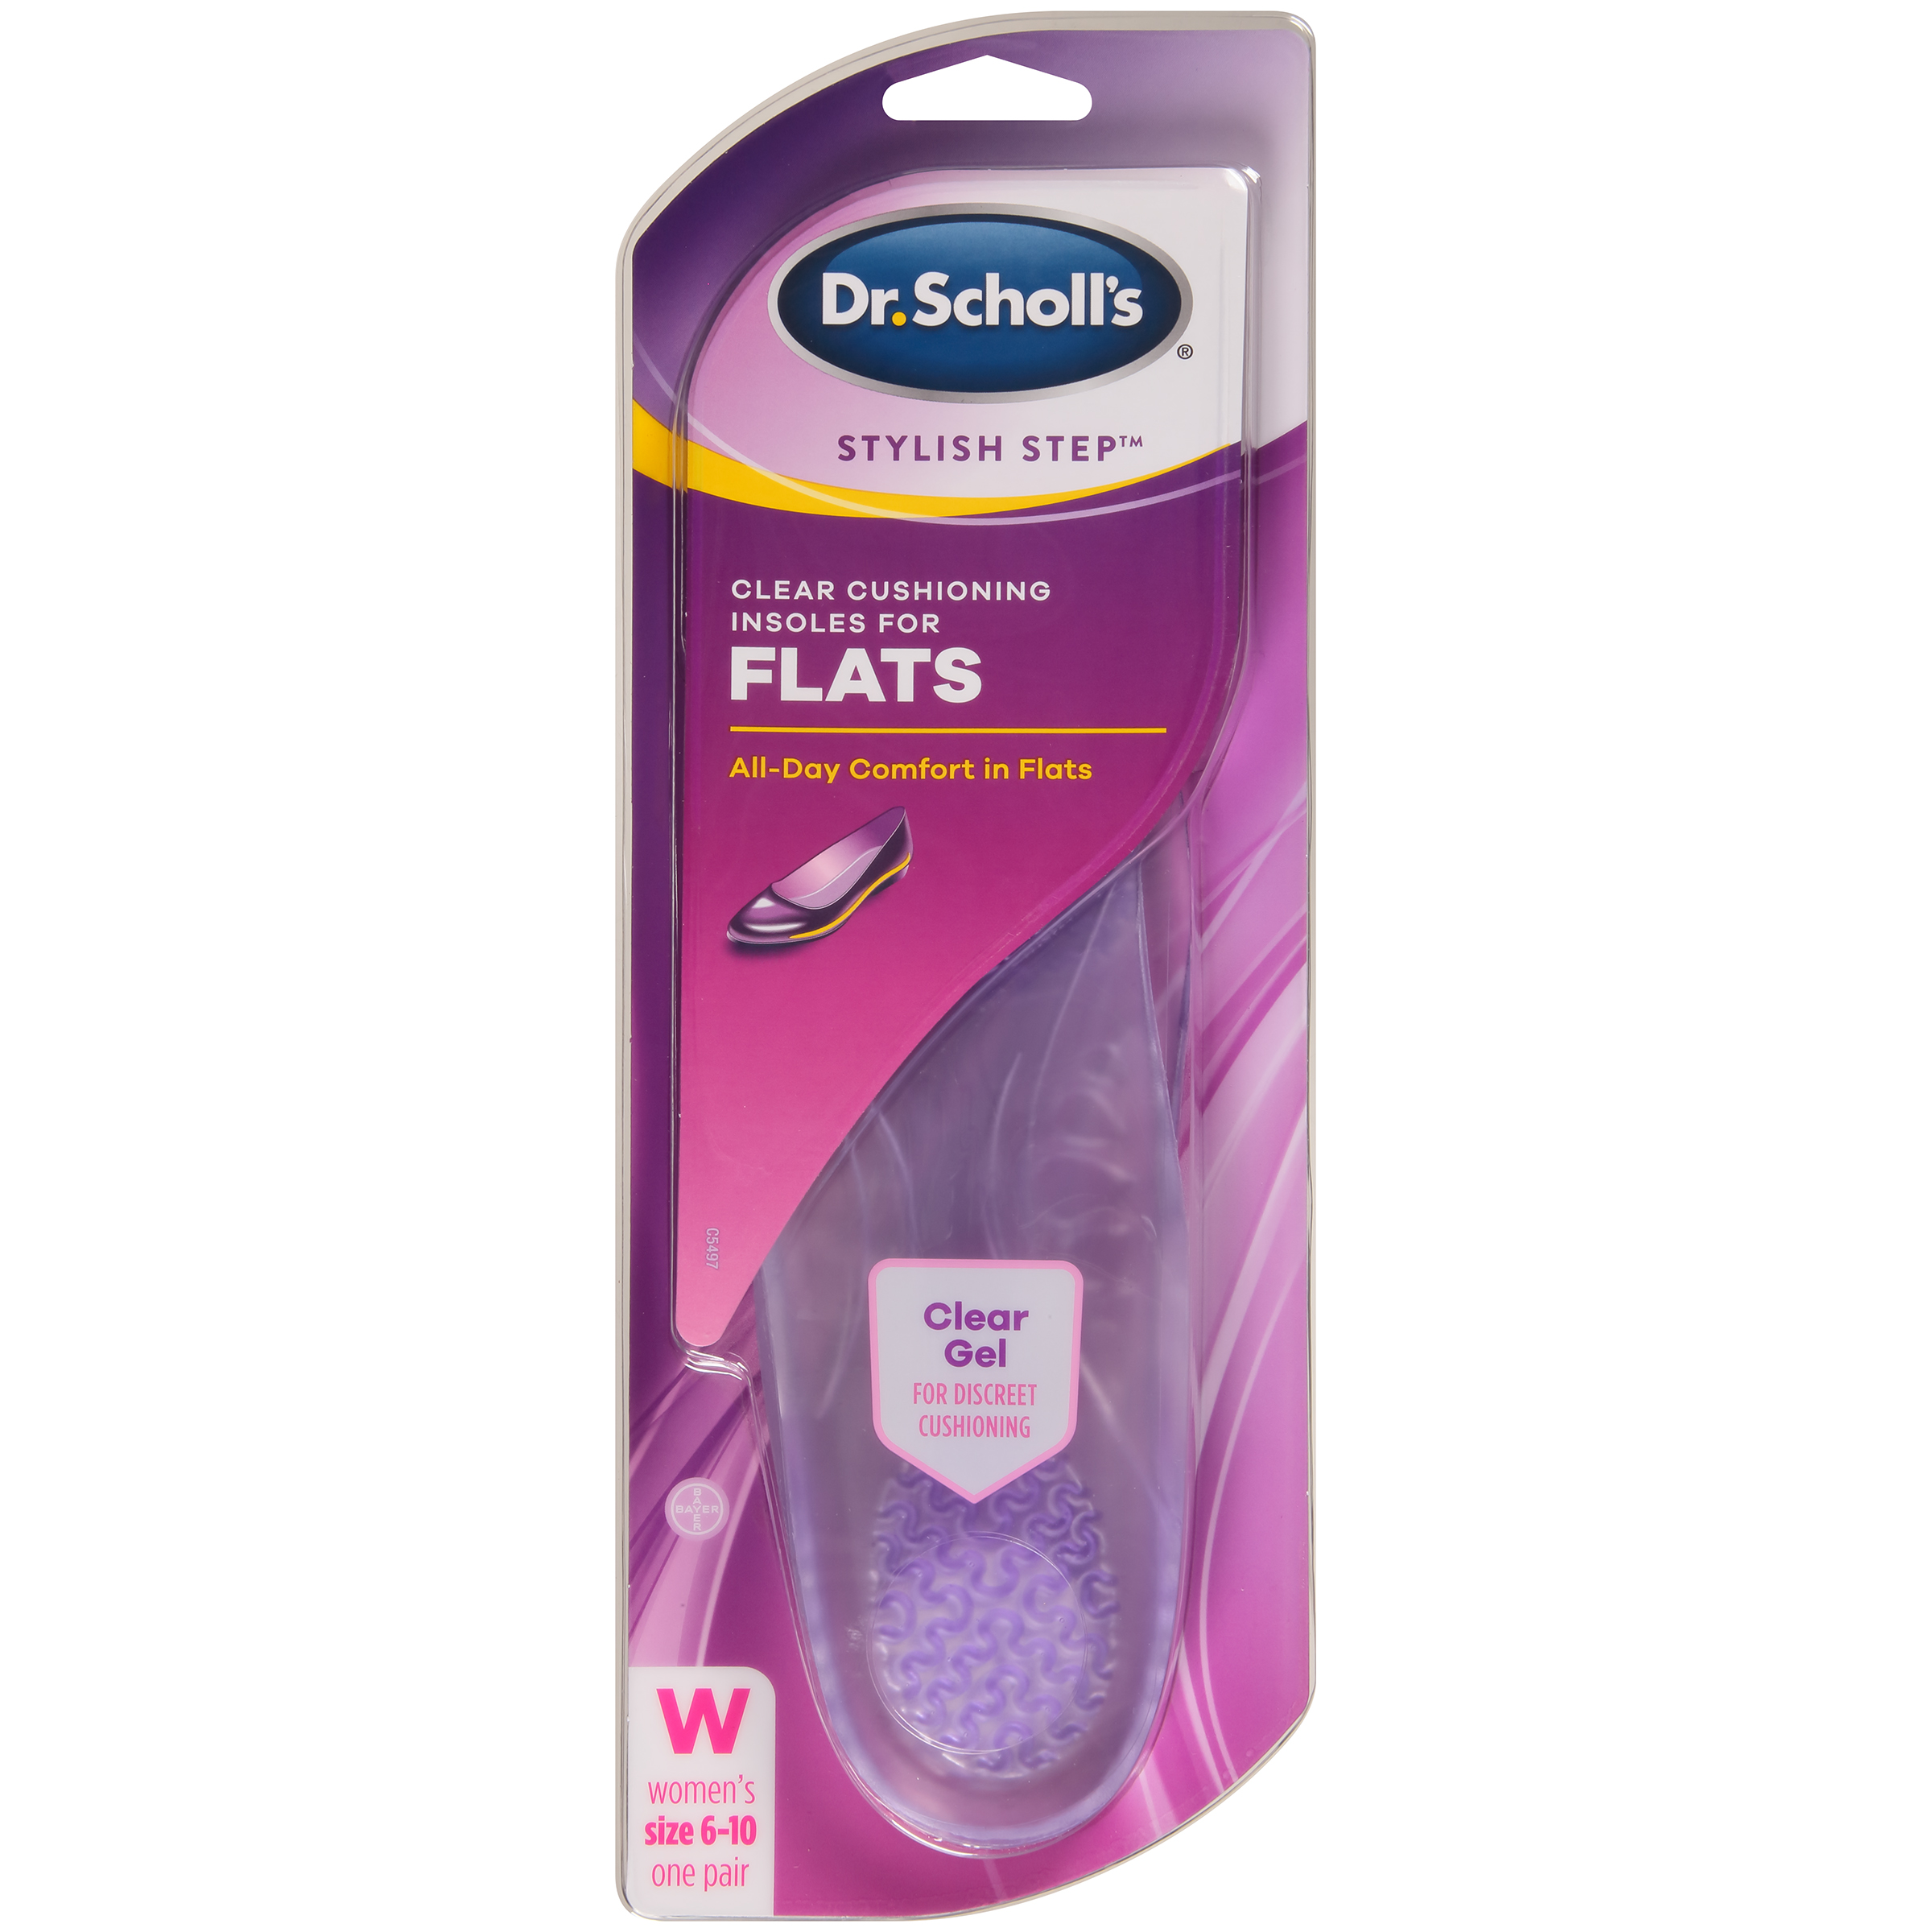 Dr. Scholl's Stylish Step Clear Cushioning Insoles for Flats, 1 Pair, Size 6-10